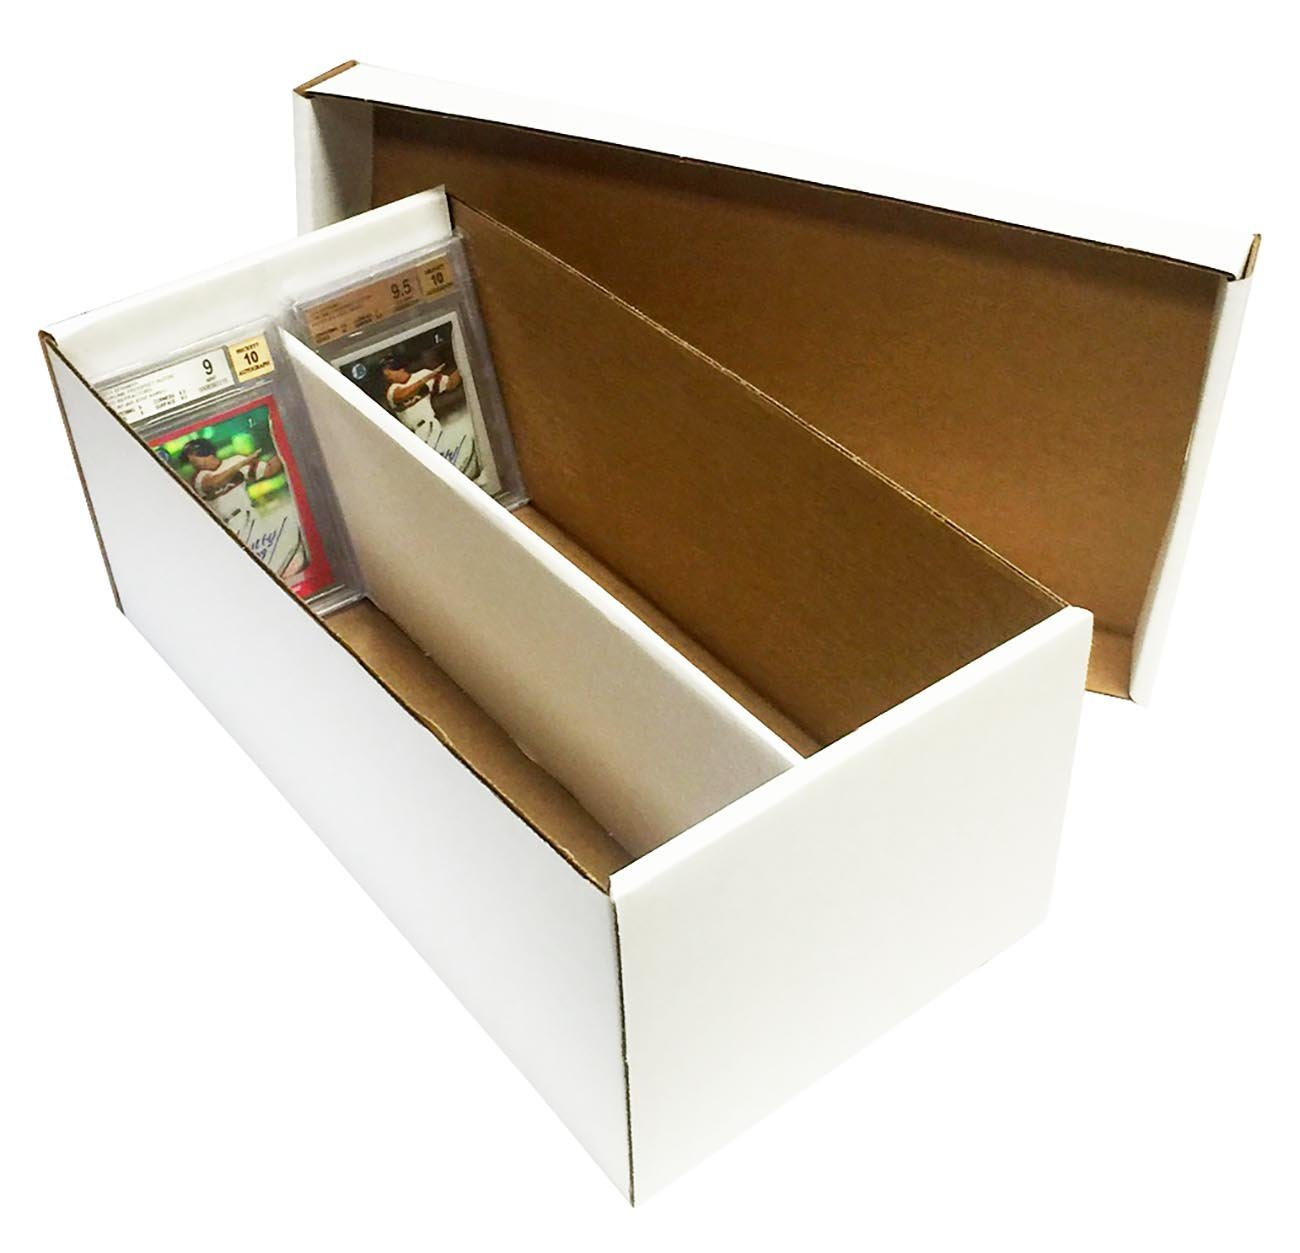 (10) Graded Shoe 2-Row Cardboard Storage Boxes - Baseball, Football, Basketball, Hockey, Nascar, Sportscards, Gaming & Trading Cards Collecting Supplies by MAX PRO - GSB